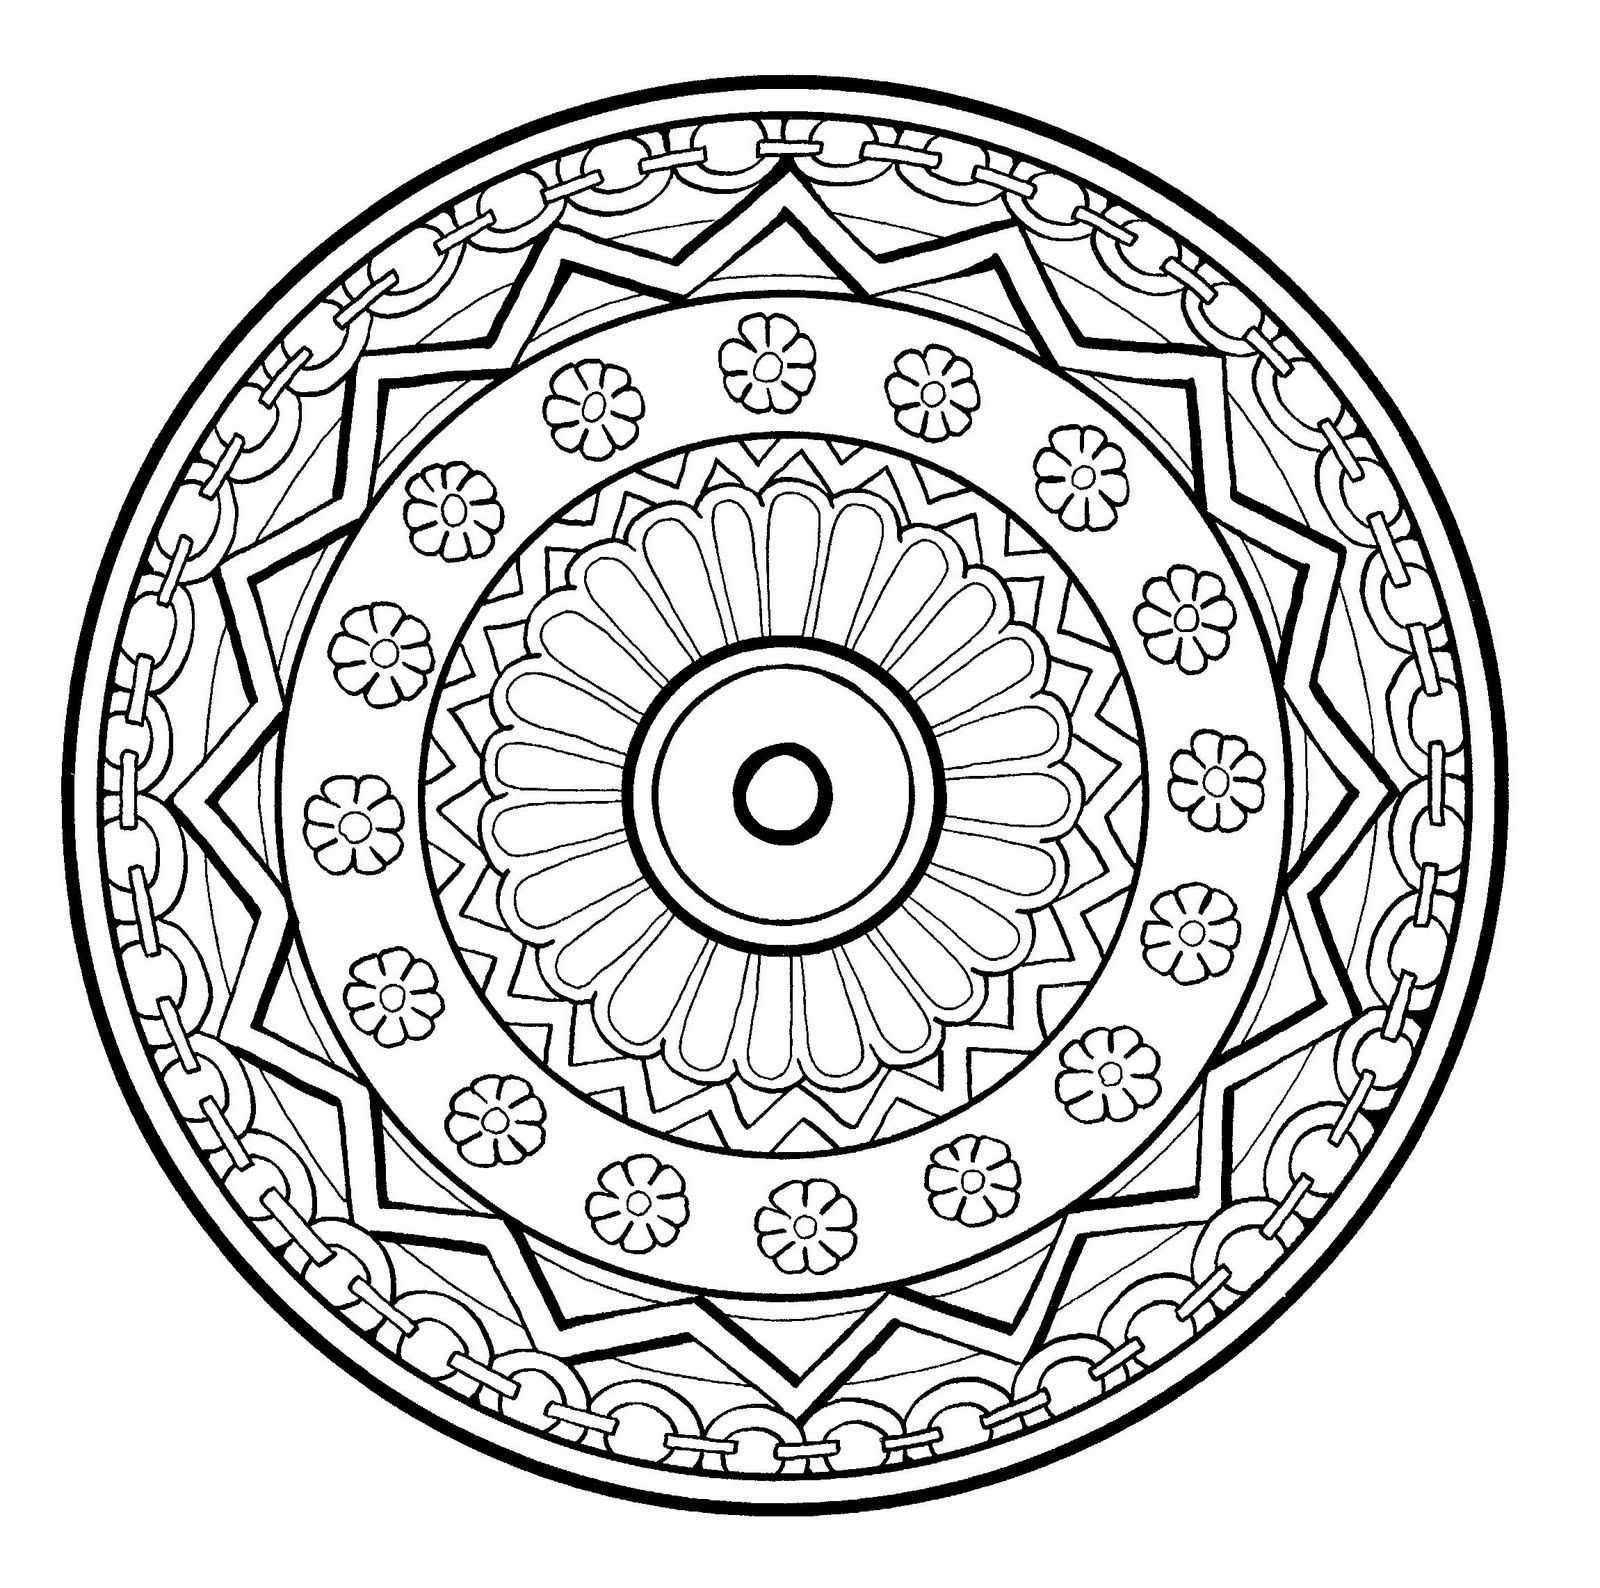 google images mandala coloring pages - photo#9